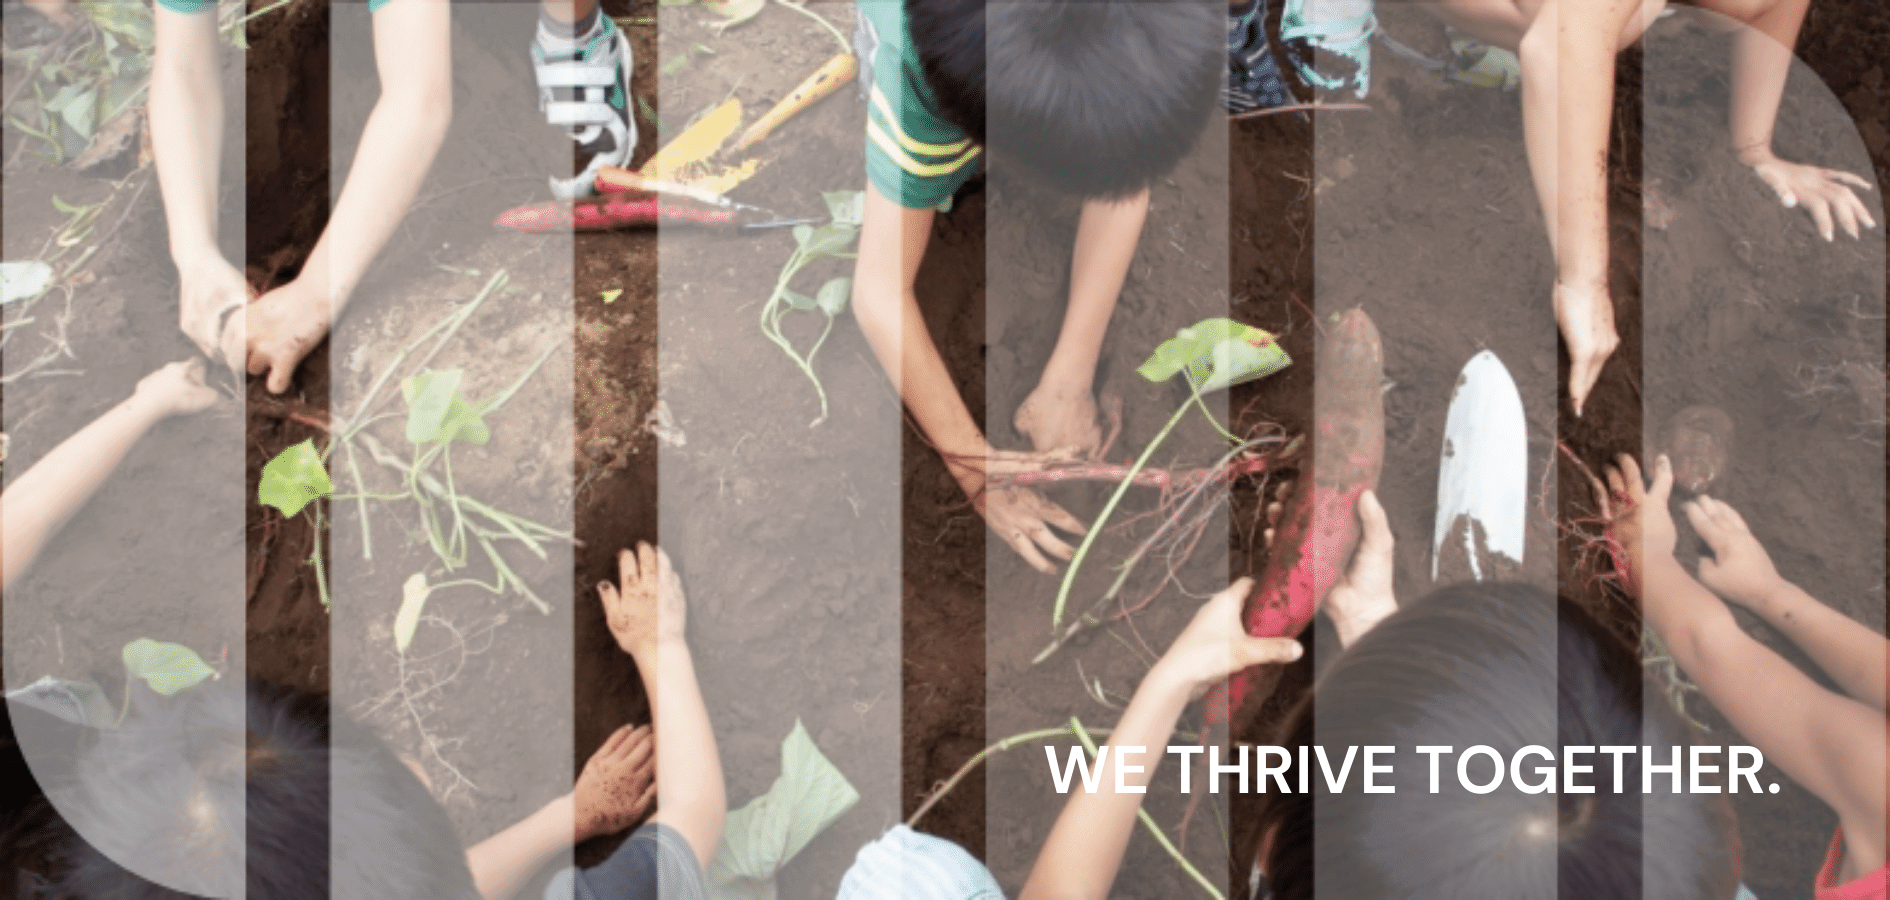 Connectedness, Involvement and Community – March 2021